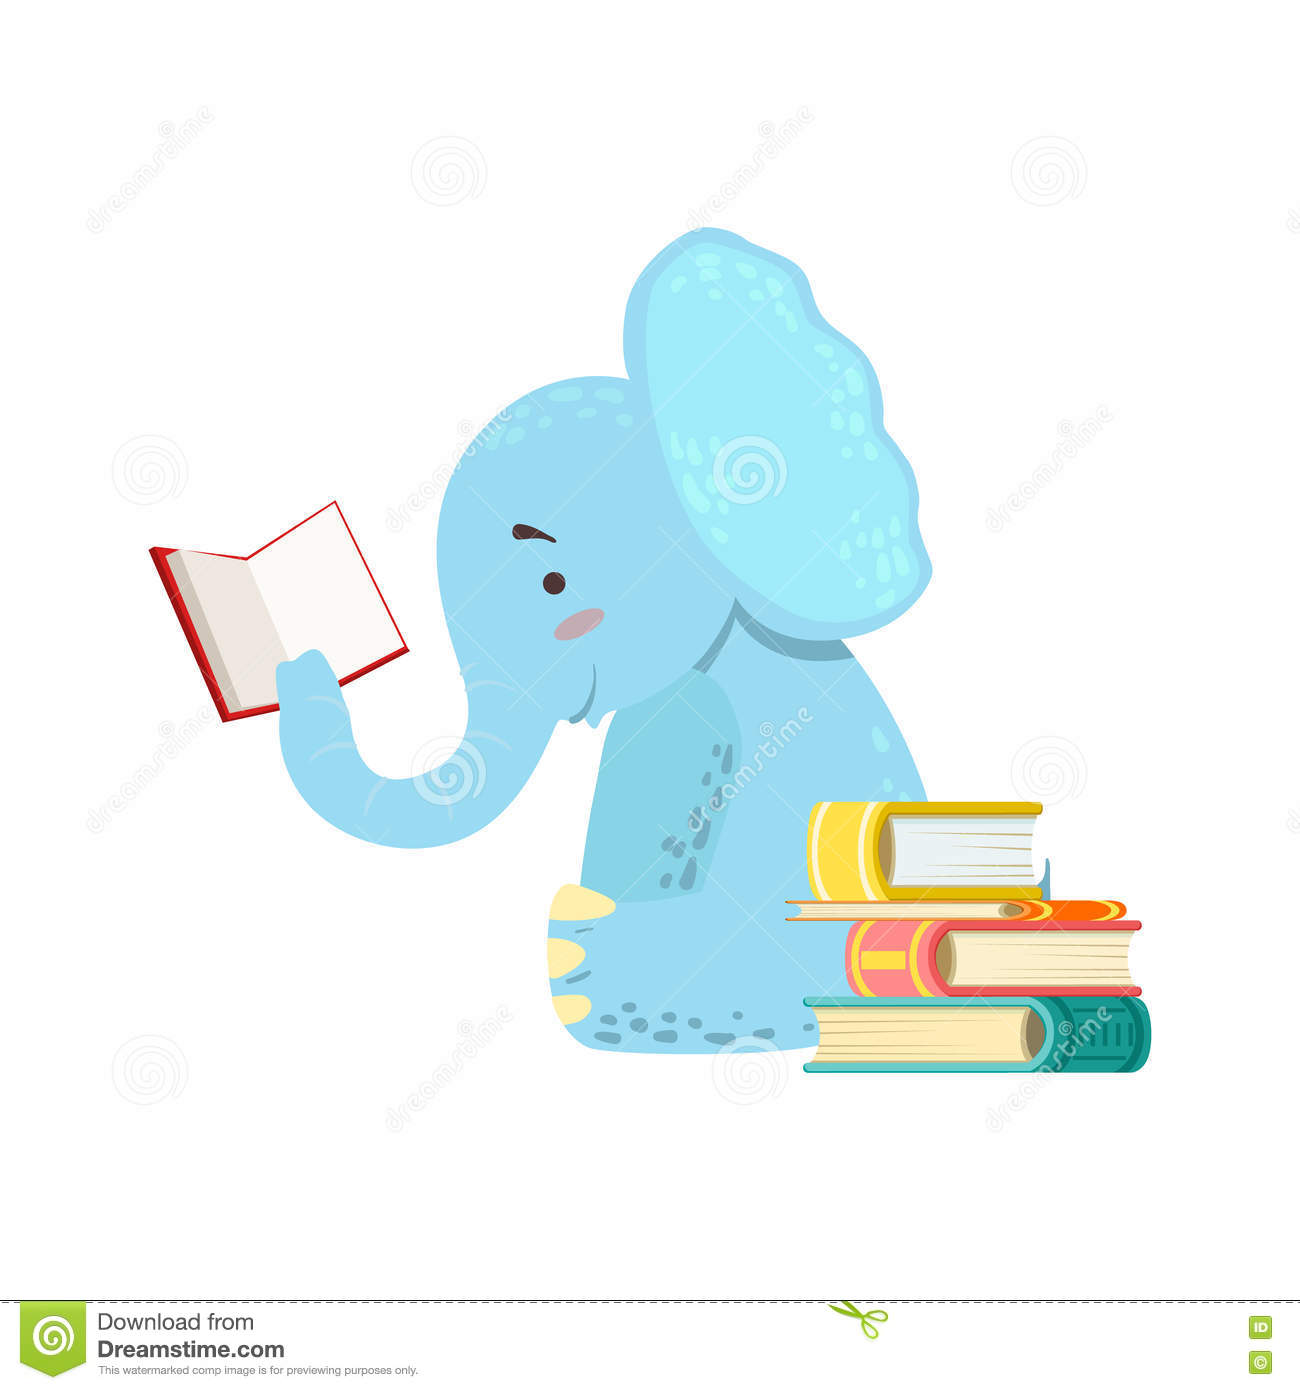 Worksheet Elephant Reading elephant smiling bookworm zoo character reading a book cartoon royalty free vector download reading